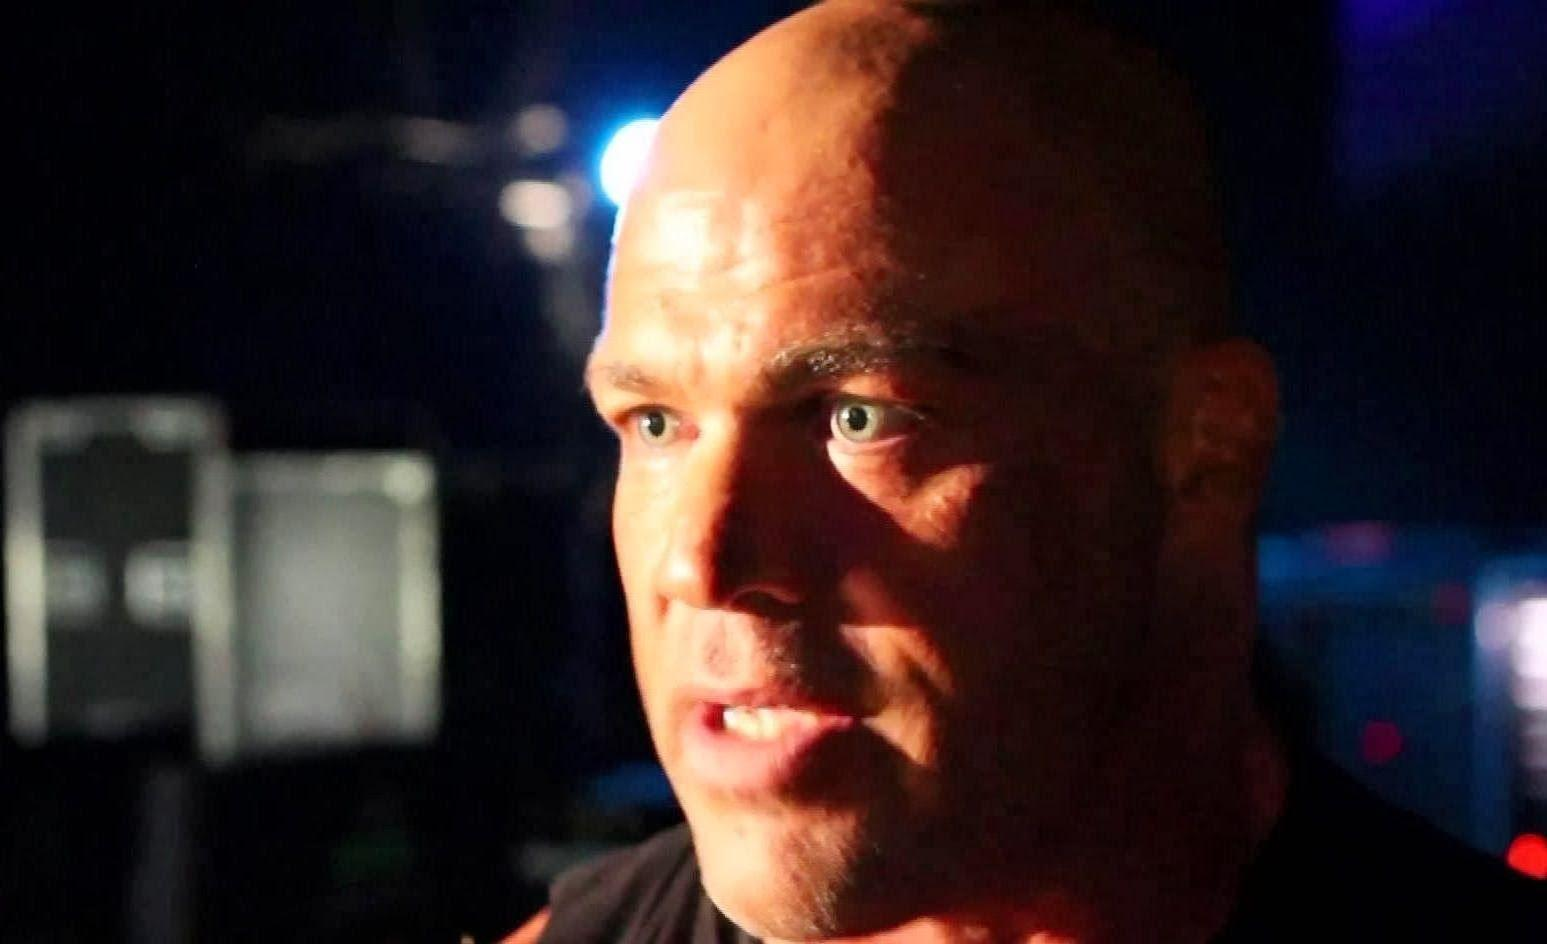 Kurt Angle Hd Wallpapers Free Download | WWE HD WALLPAPER FREE ...